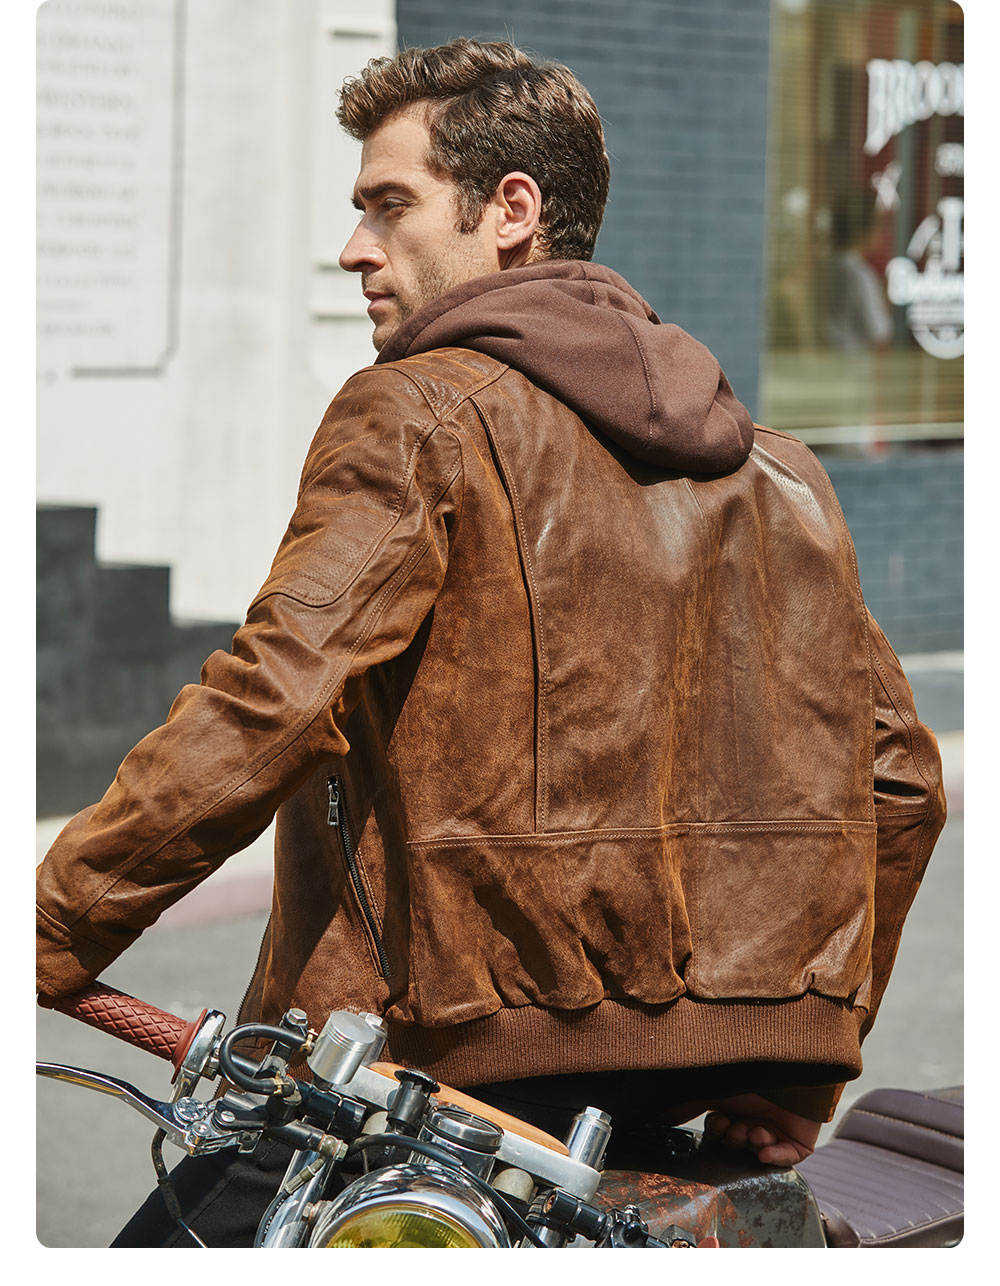 H8809478cf3ba409da43166fe9d2d53562 New Men's Leather Jacket, Brown Jacket Made Of Genuine Leather With A Removable Hood, Warm Leather Jacket For Men For The Winter